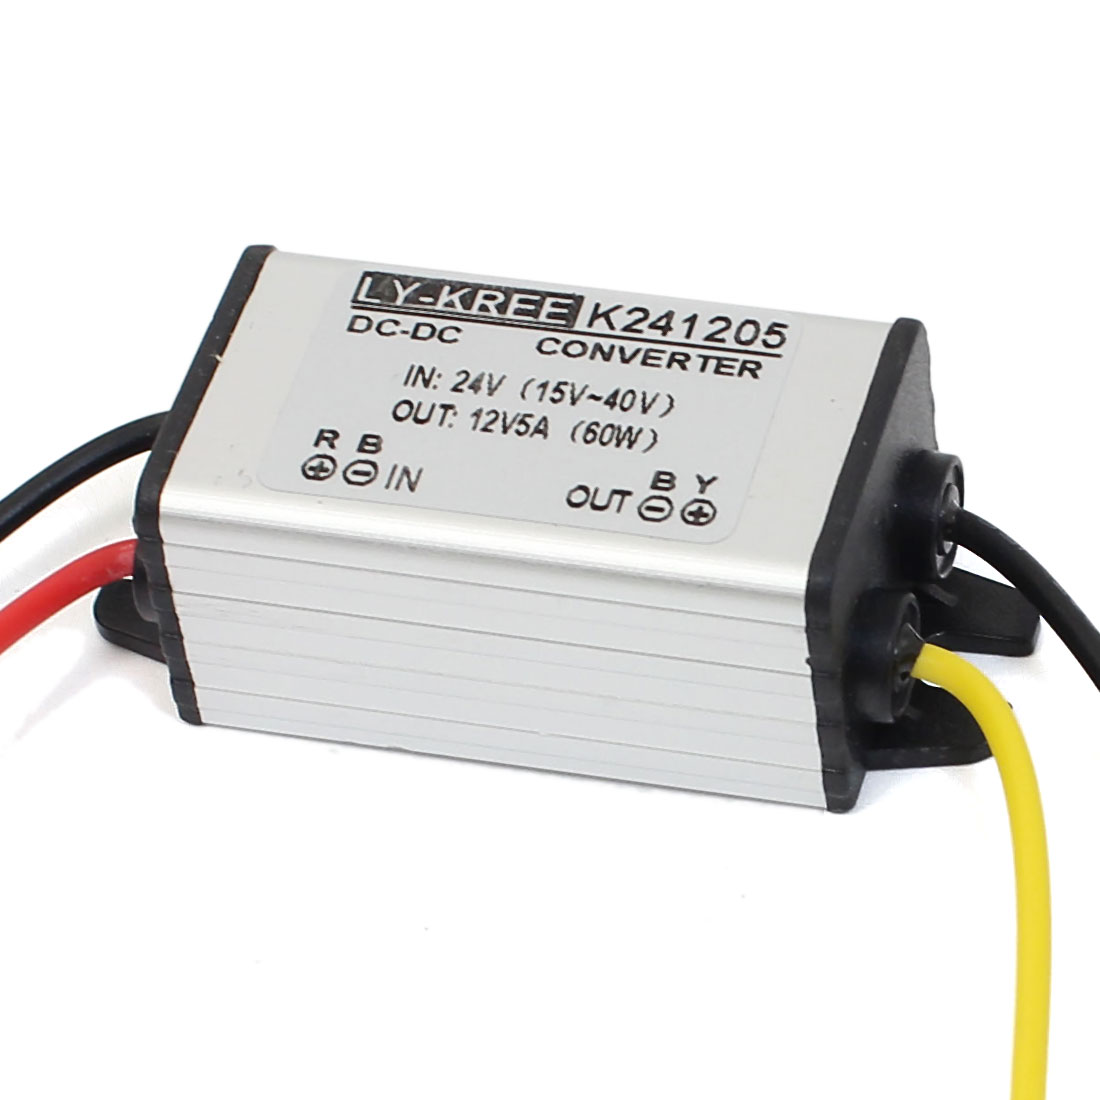 DC 24V(15V-40V) to DC 12V 5A 60W Power Converter Regulator Waterproof Electronic Transformer